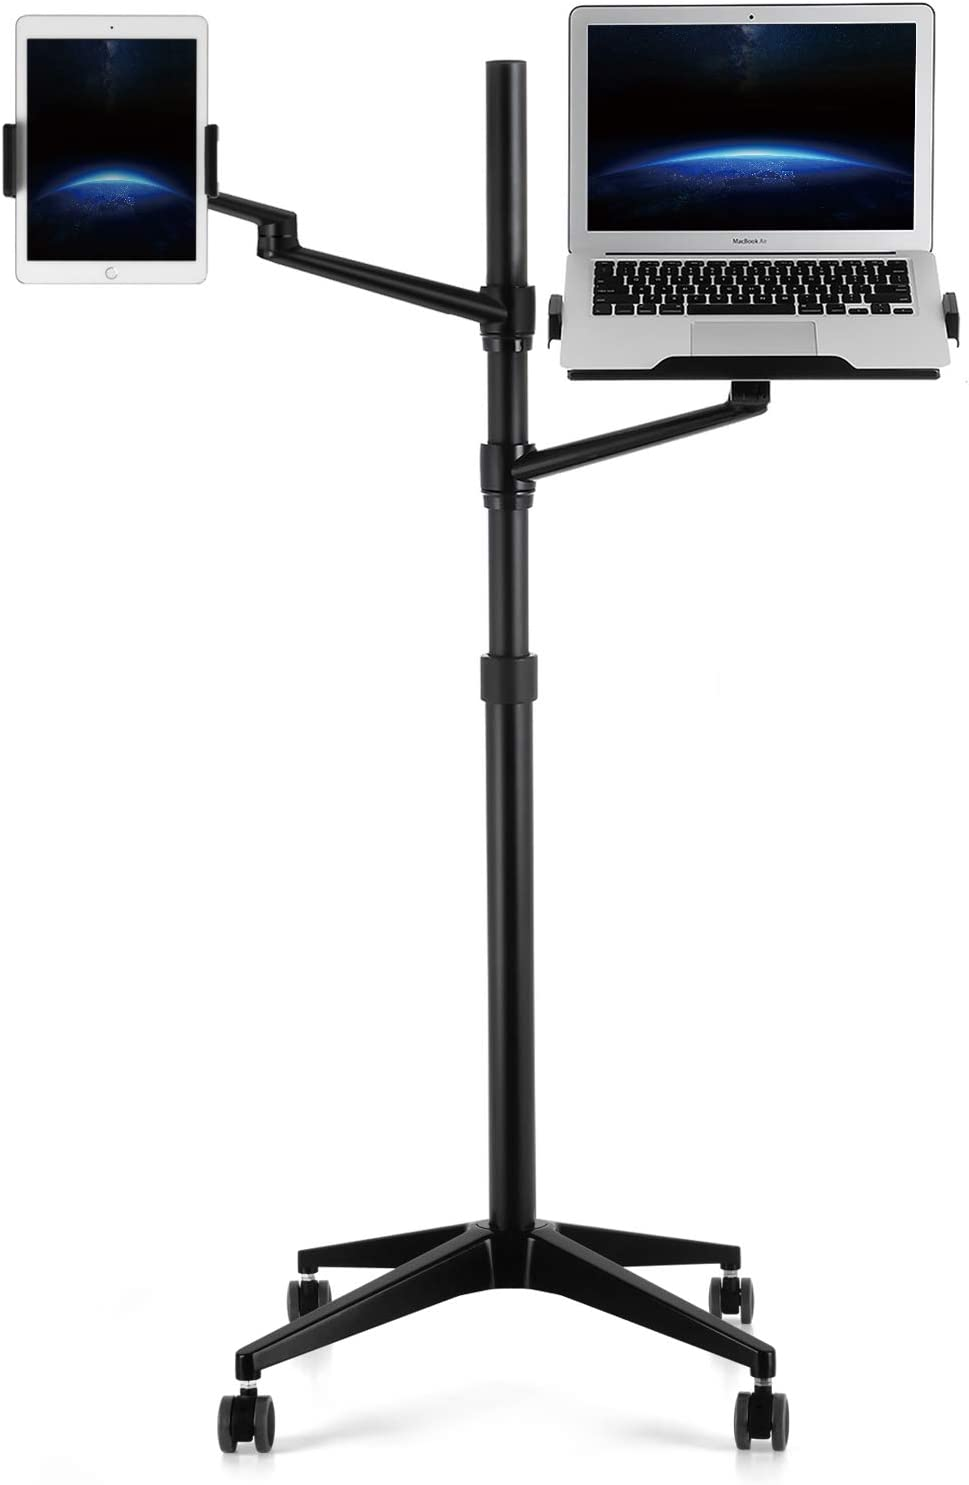 Upergo Tablet and Laptop Floor Stand with Wheels,2-in-1 Rolling Floor Stand with Dual Rotatable Arms for iPad and Laptop, Height Adjustable Mobile Workstation for 4~13